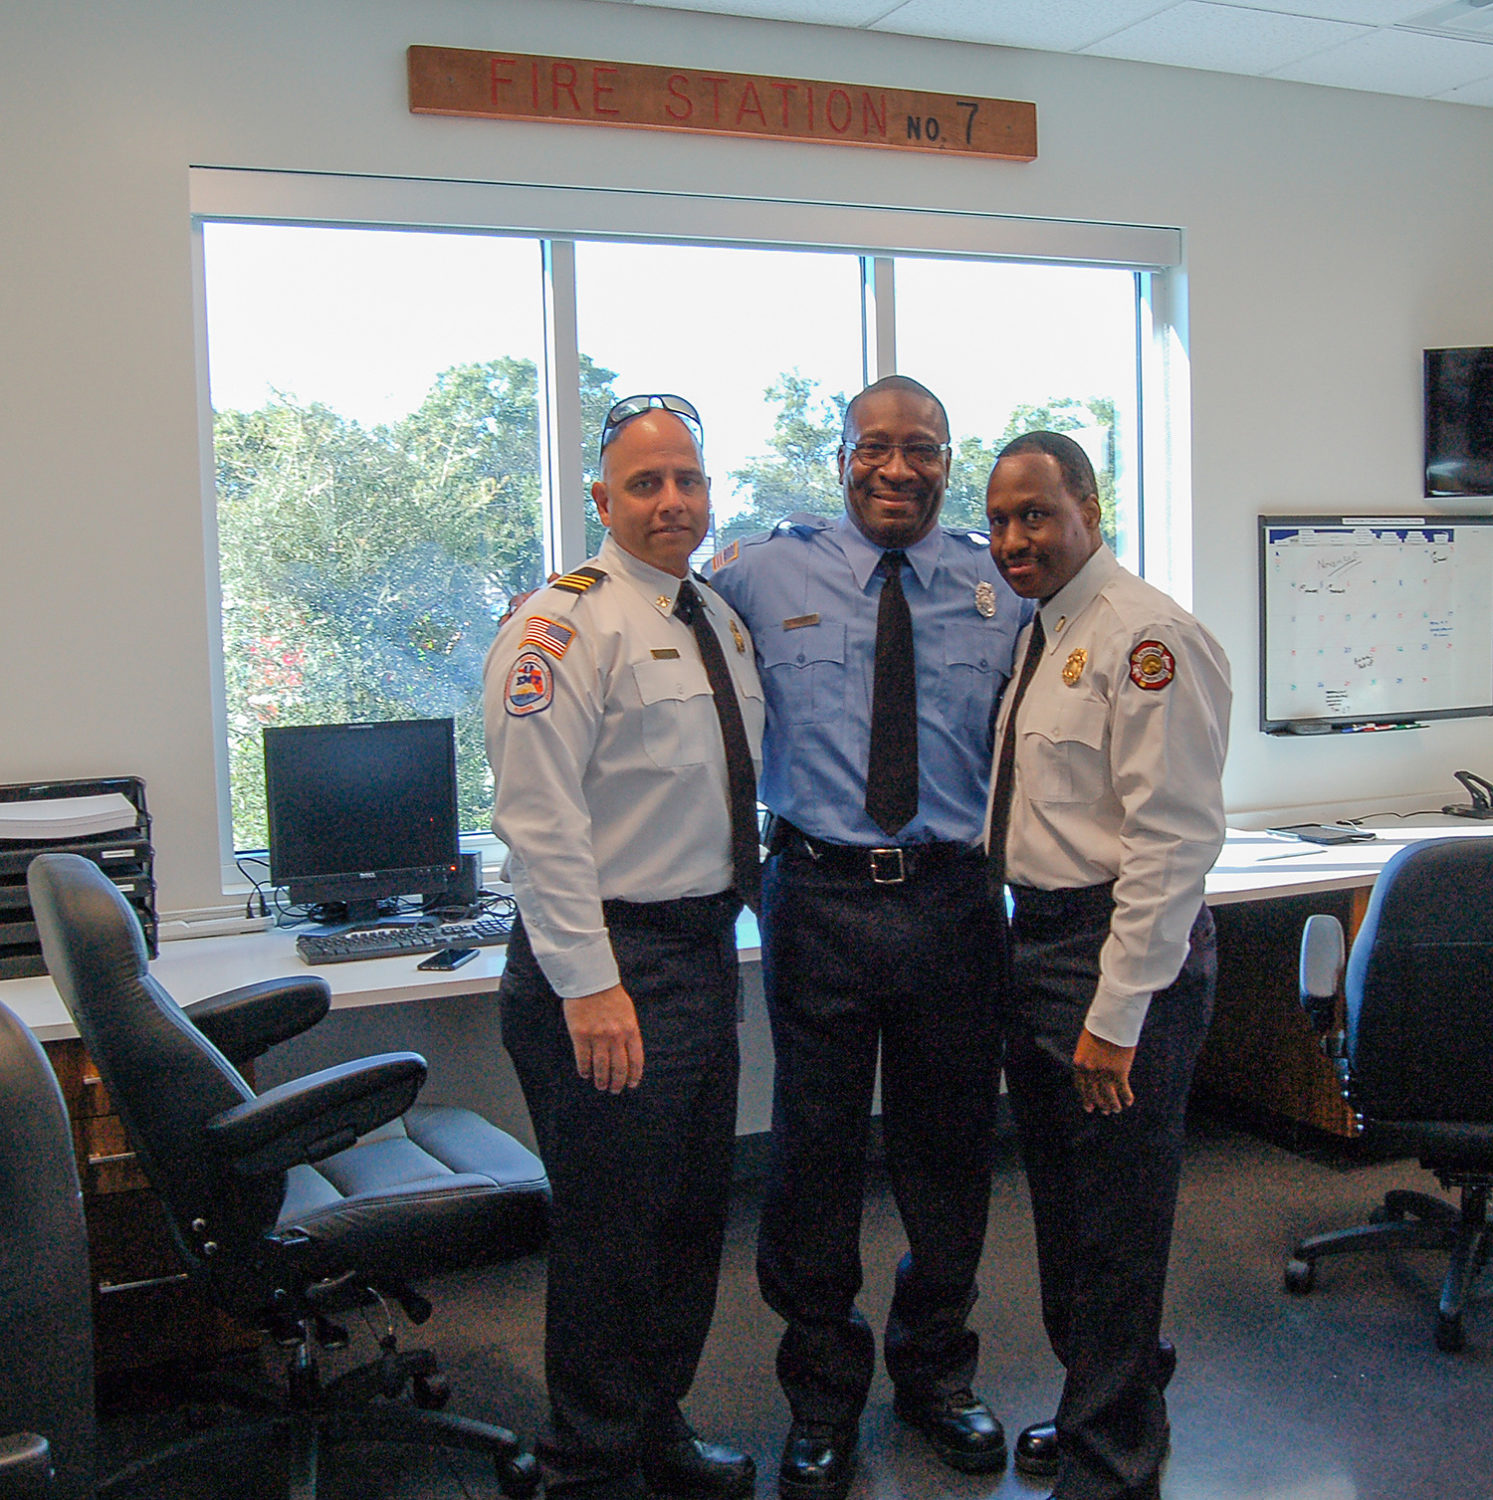 Fire Station Staff